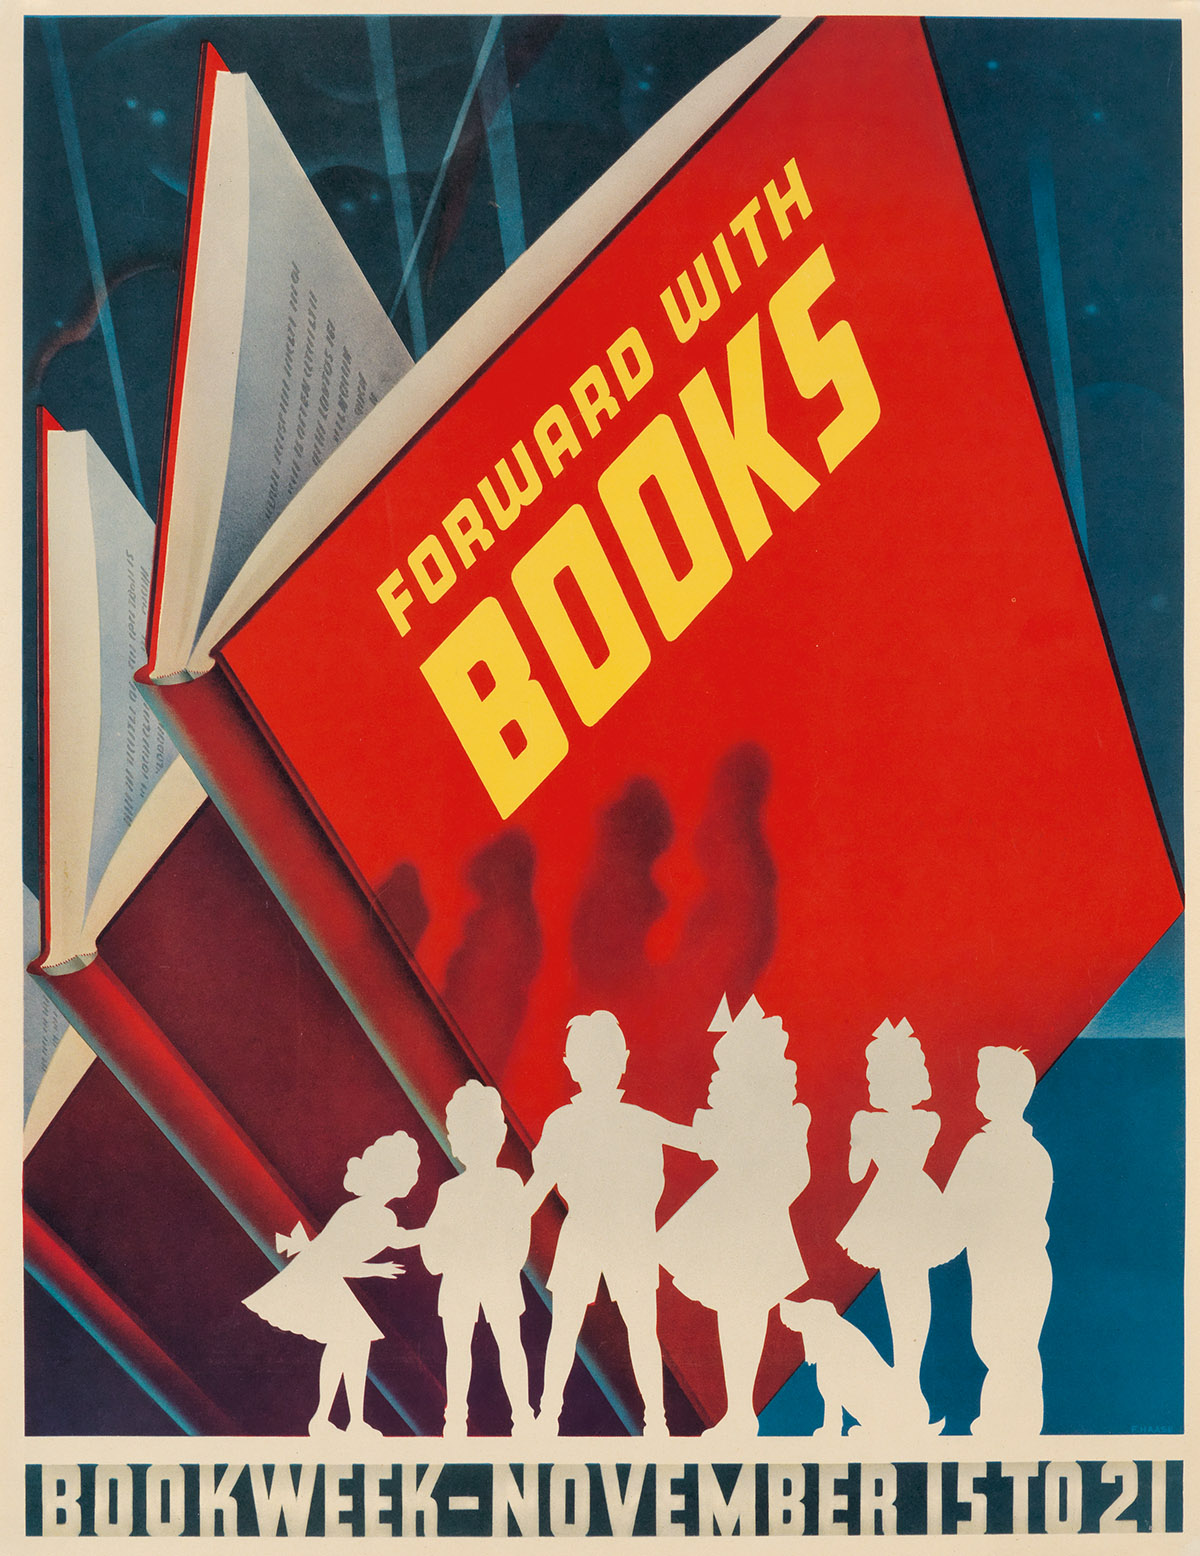 VARIOUS-ARTISTS-BOOK-WEEK-Group-of-6-posters-1942-1948-Sizes